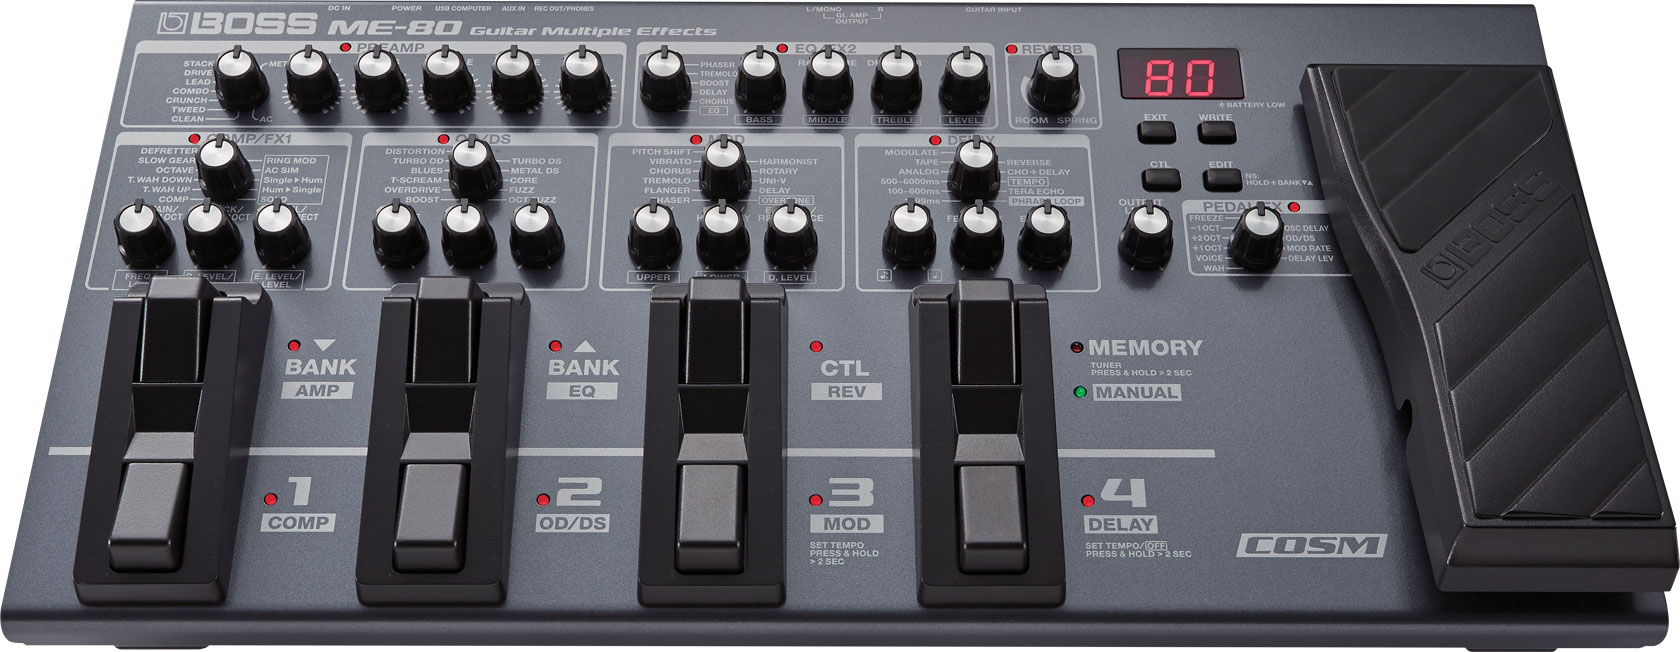 Boss Me 80 Guitar Multiple Effects Crunch Sub Amp Wiring Diagram